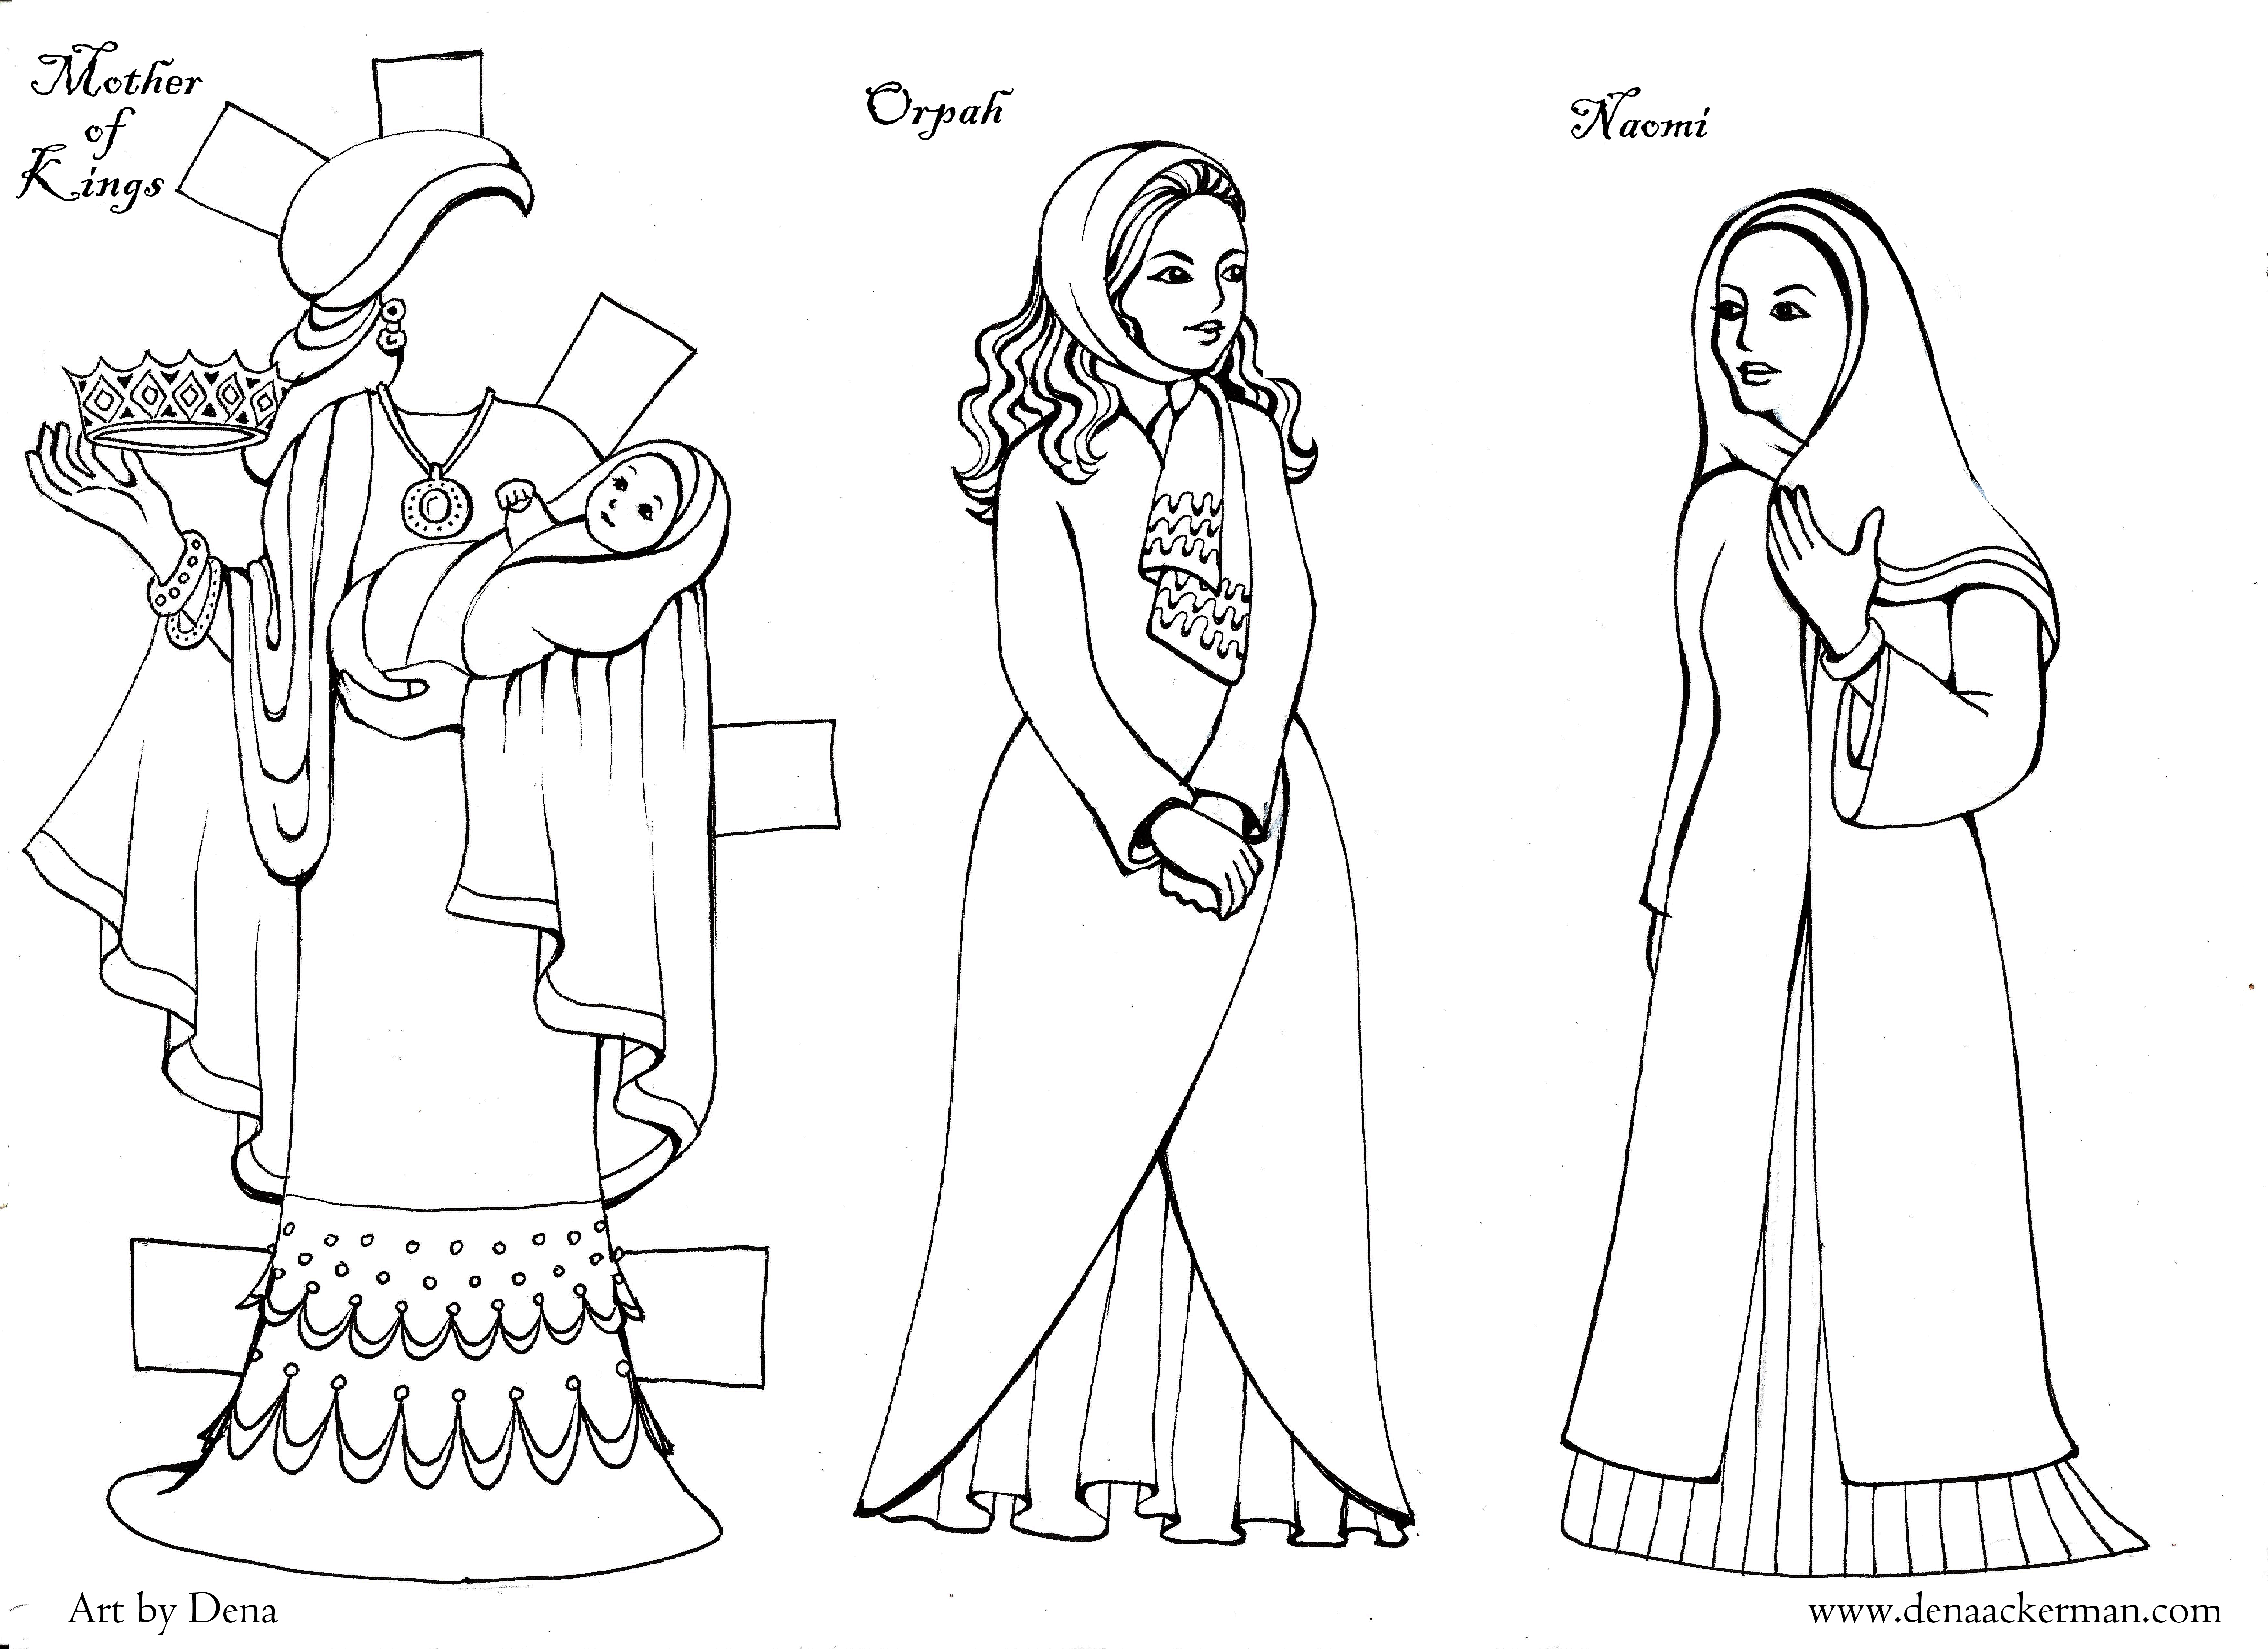 Ruth Paper Dolls for Shavuot!